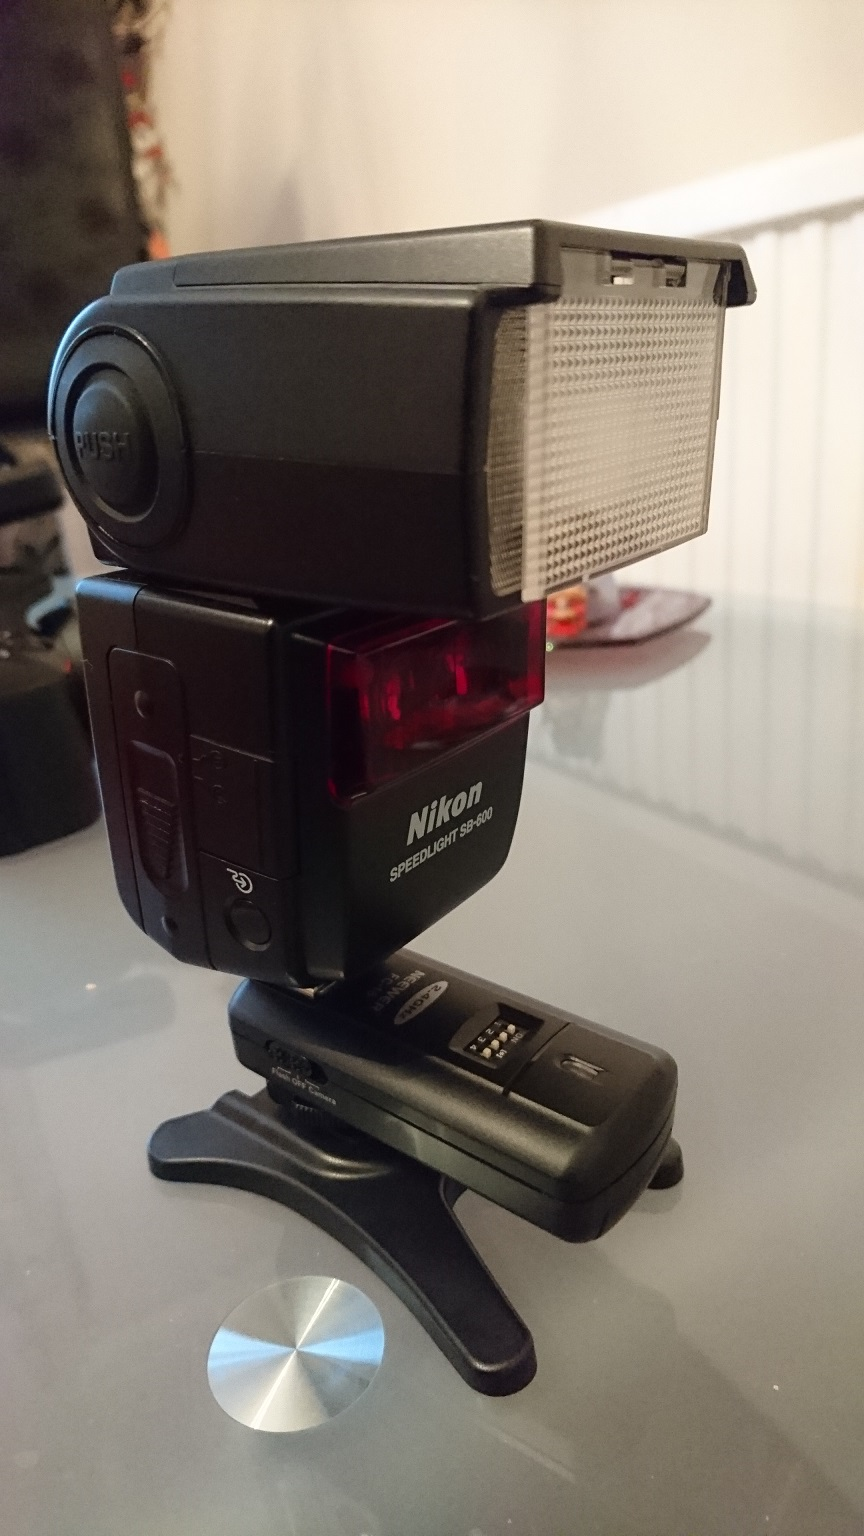 Neewer FC-16 receiver attached to flash and flash stand